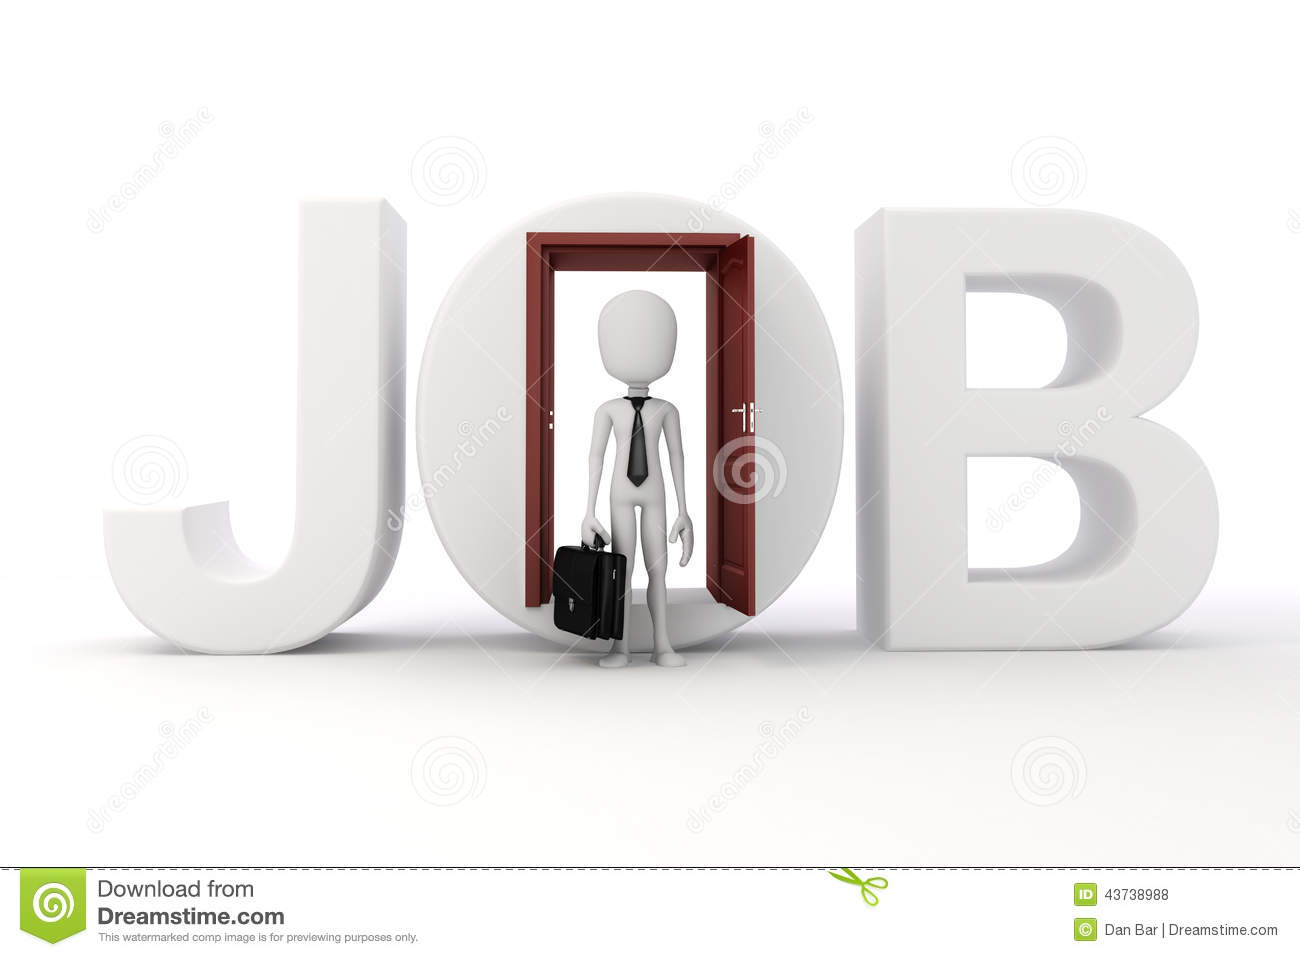 d man new job opportunity concept stock illustration image 3d man new job opportunity concept